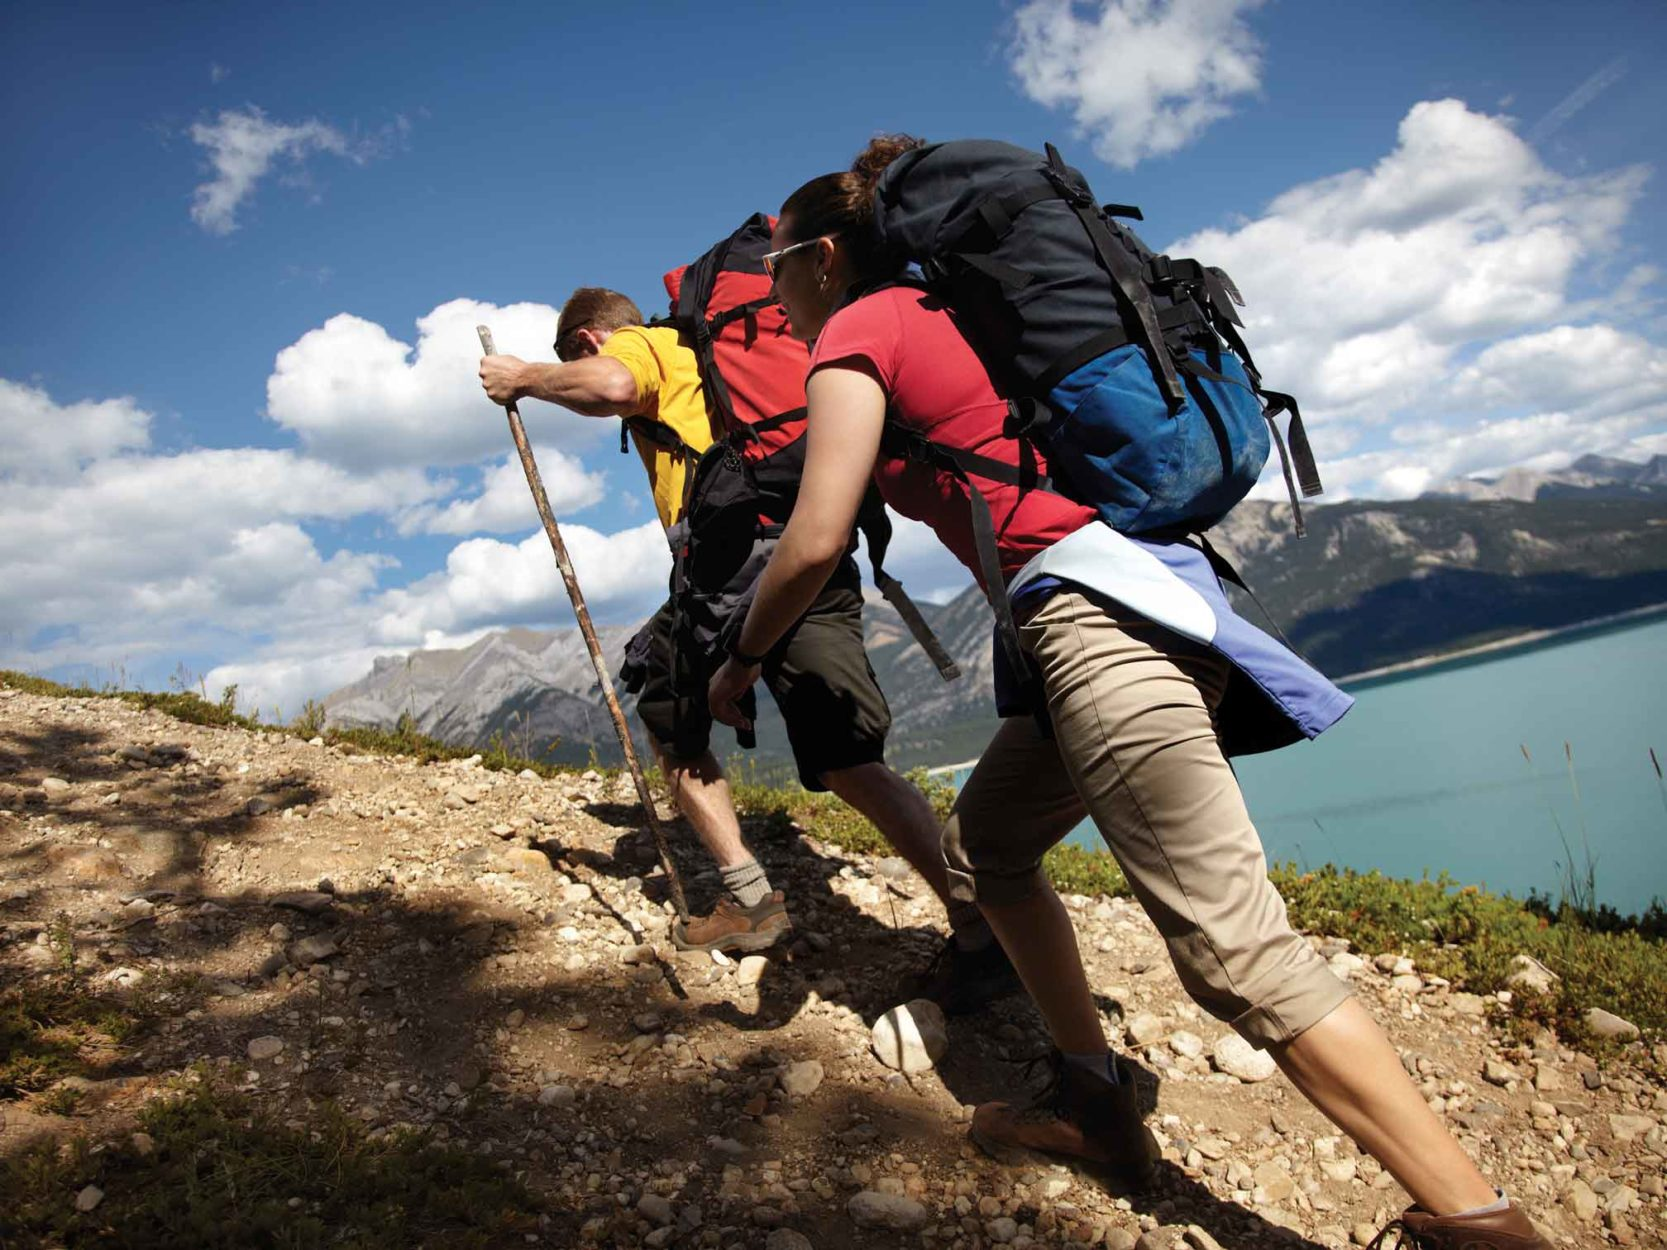 15 Stores For Canadian Rockies Outdoor Clothing on Where Rockies